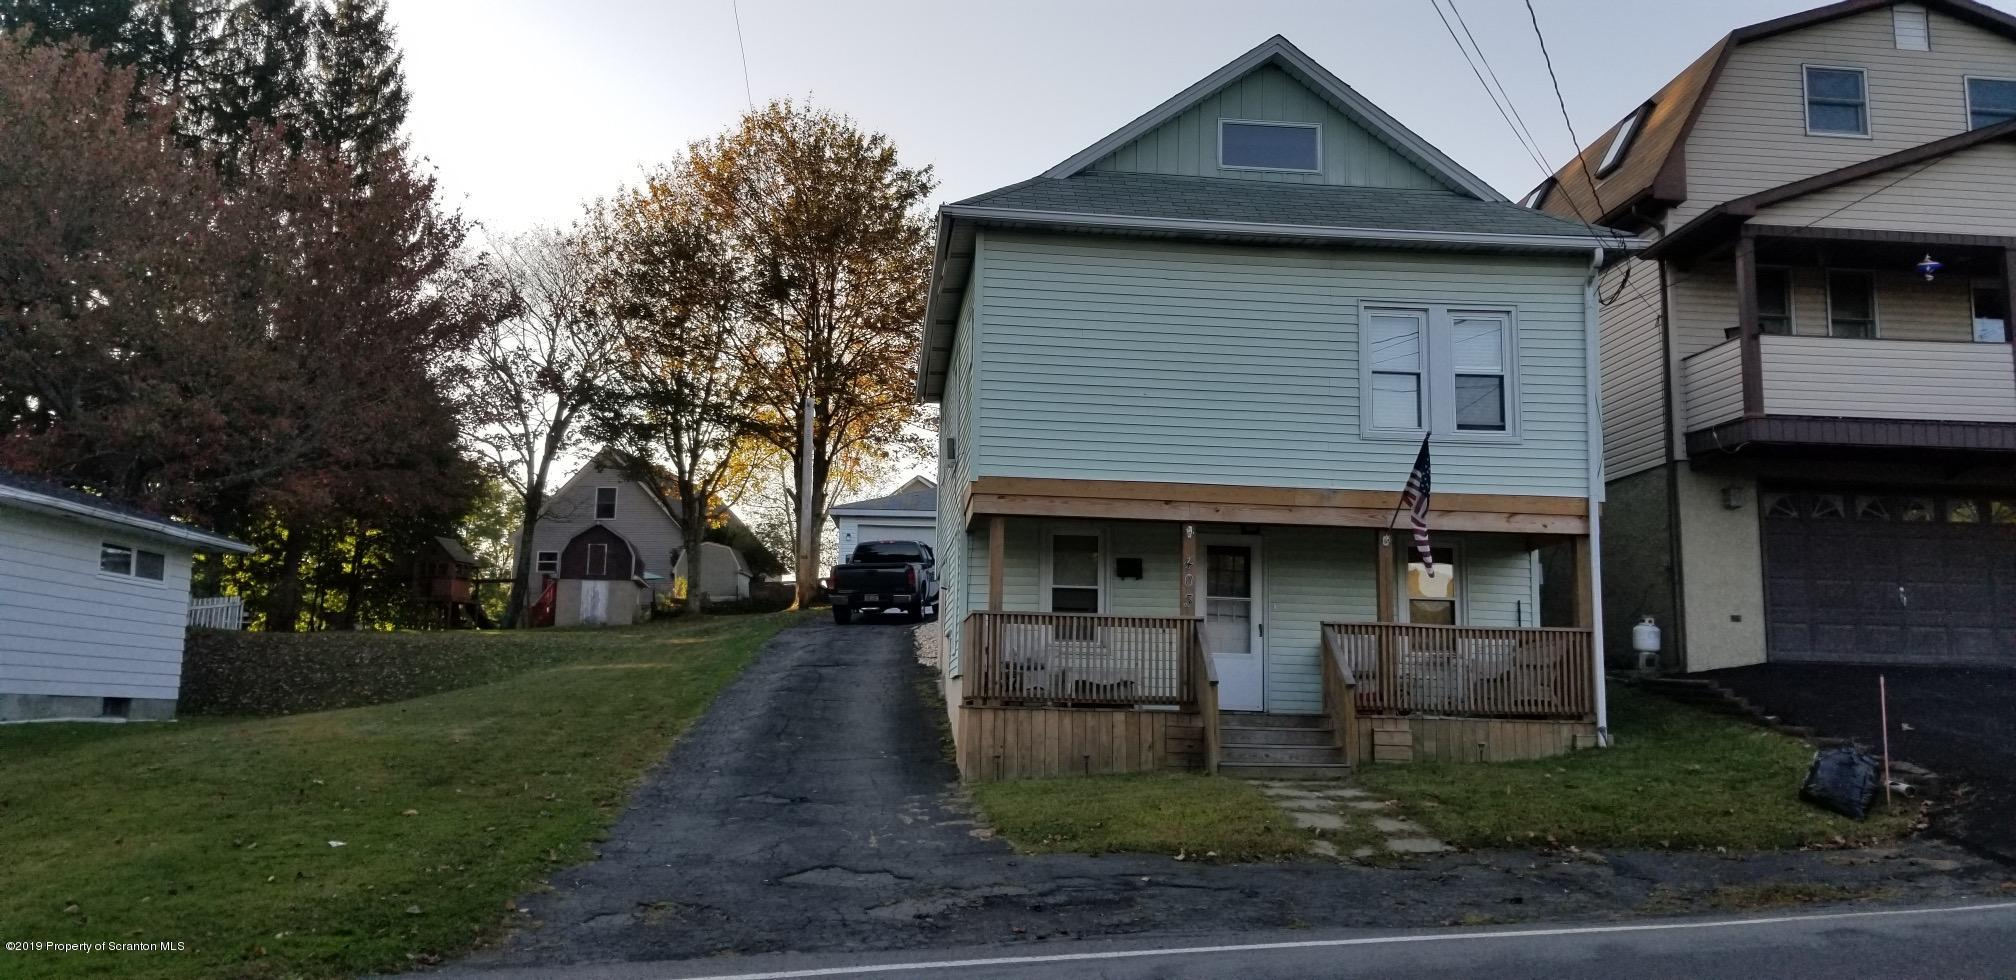 403 Marion, Browndale, Pennsylvania 18421, 3 Bedrooms Bedrooms, 6 Rooms Rooms,2 BathroomsBathrooms,Single Family,For Sale,Marion,19-5333